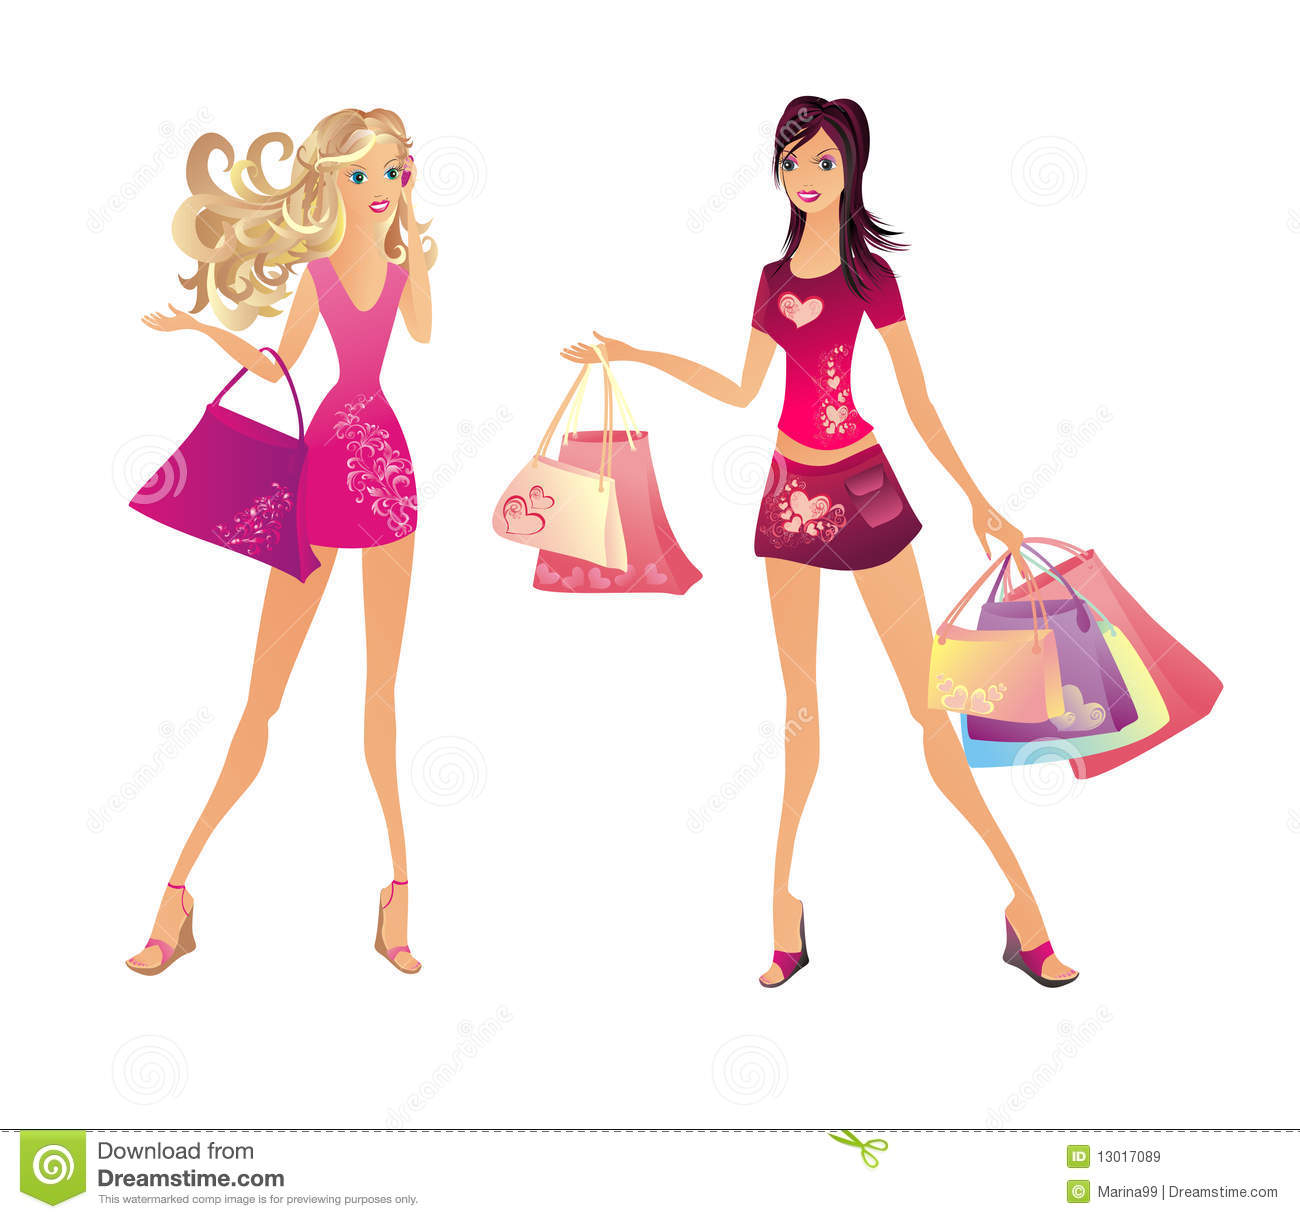 da80b213c Shopping Woman, Vector Illustration Stock Vector - Illustration of ...